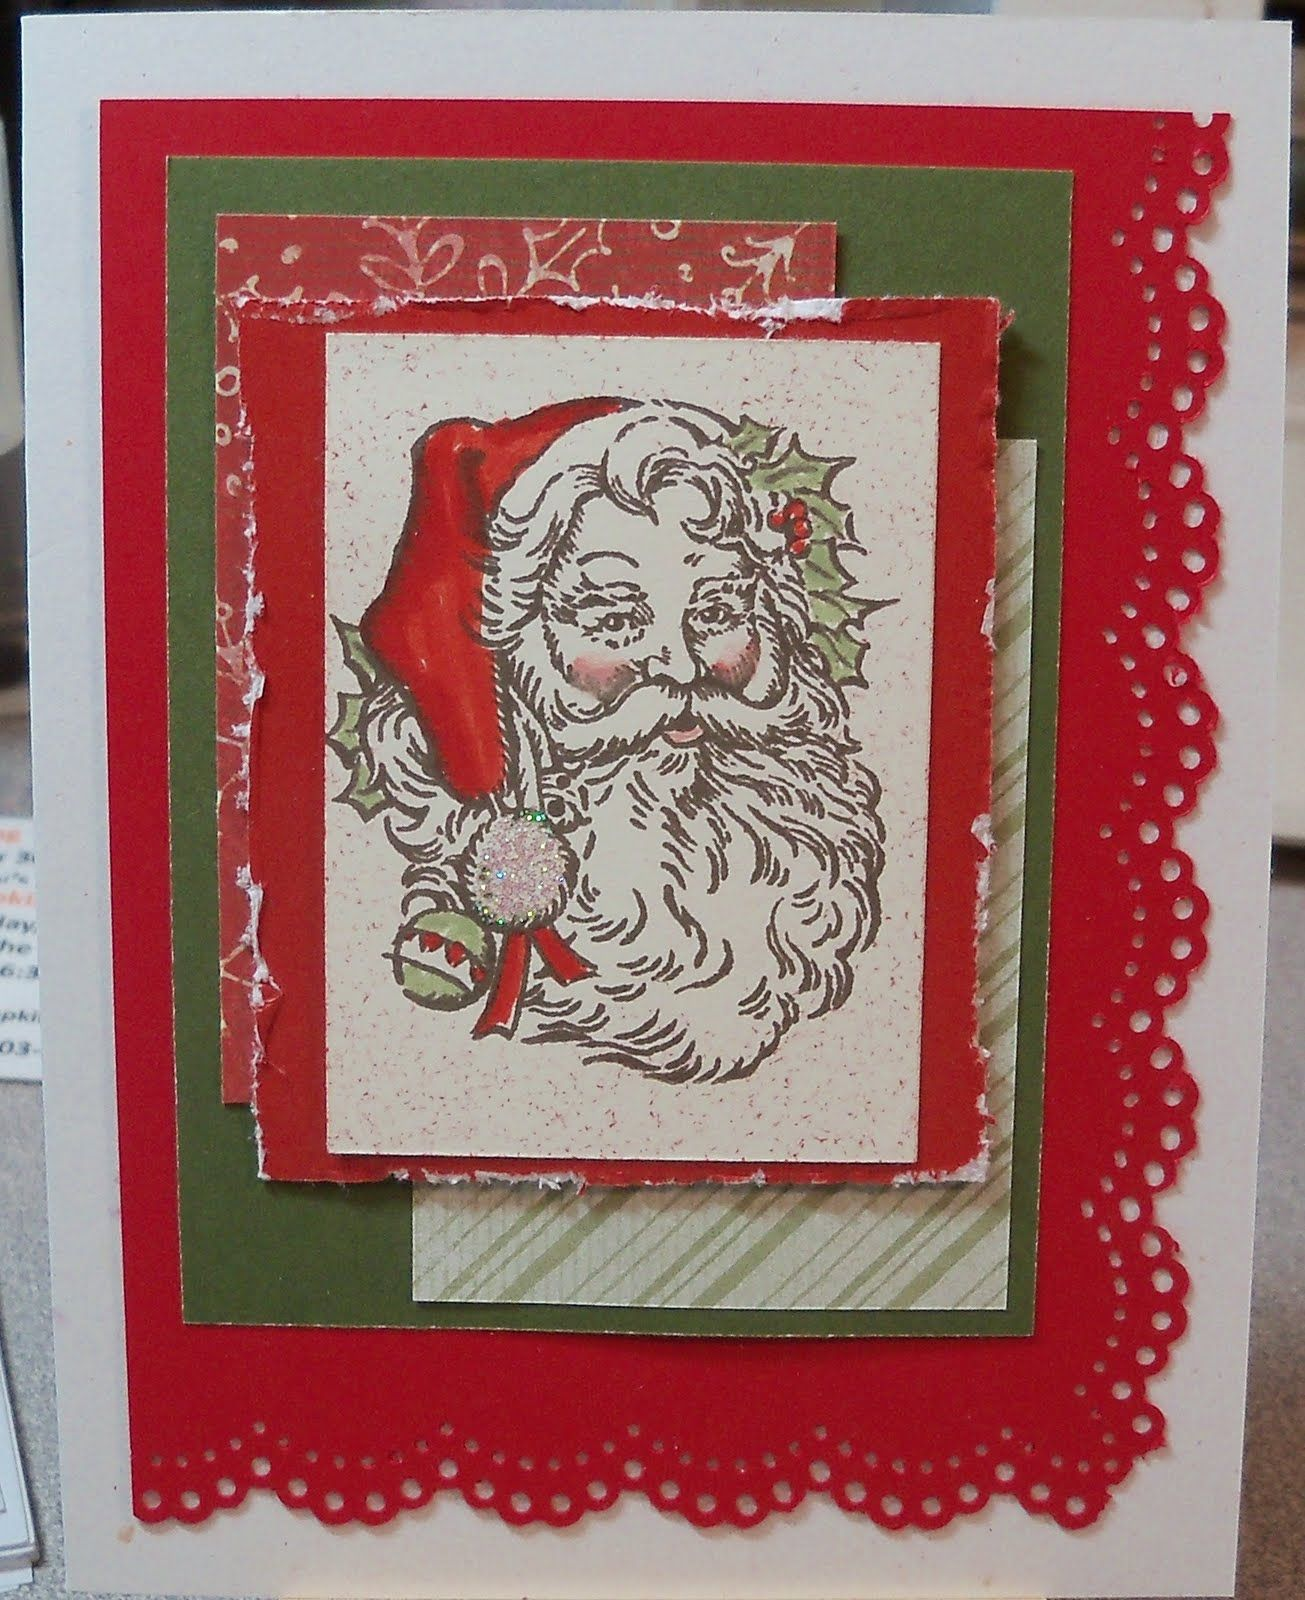 Scrapbook ideas christmas card - Scrapbooking Christmas Card Ideas Here Are Three More Trial Cards The Santa Card Started Out